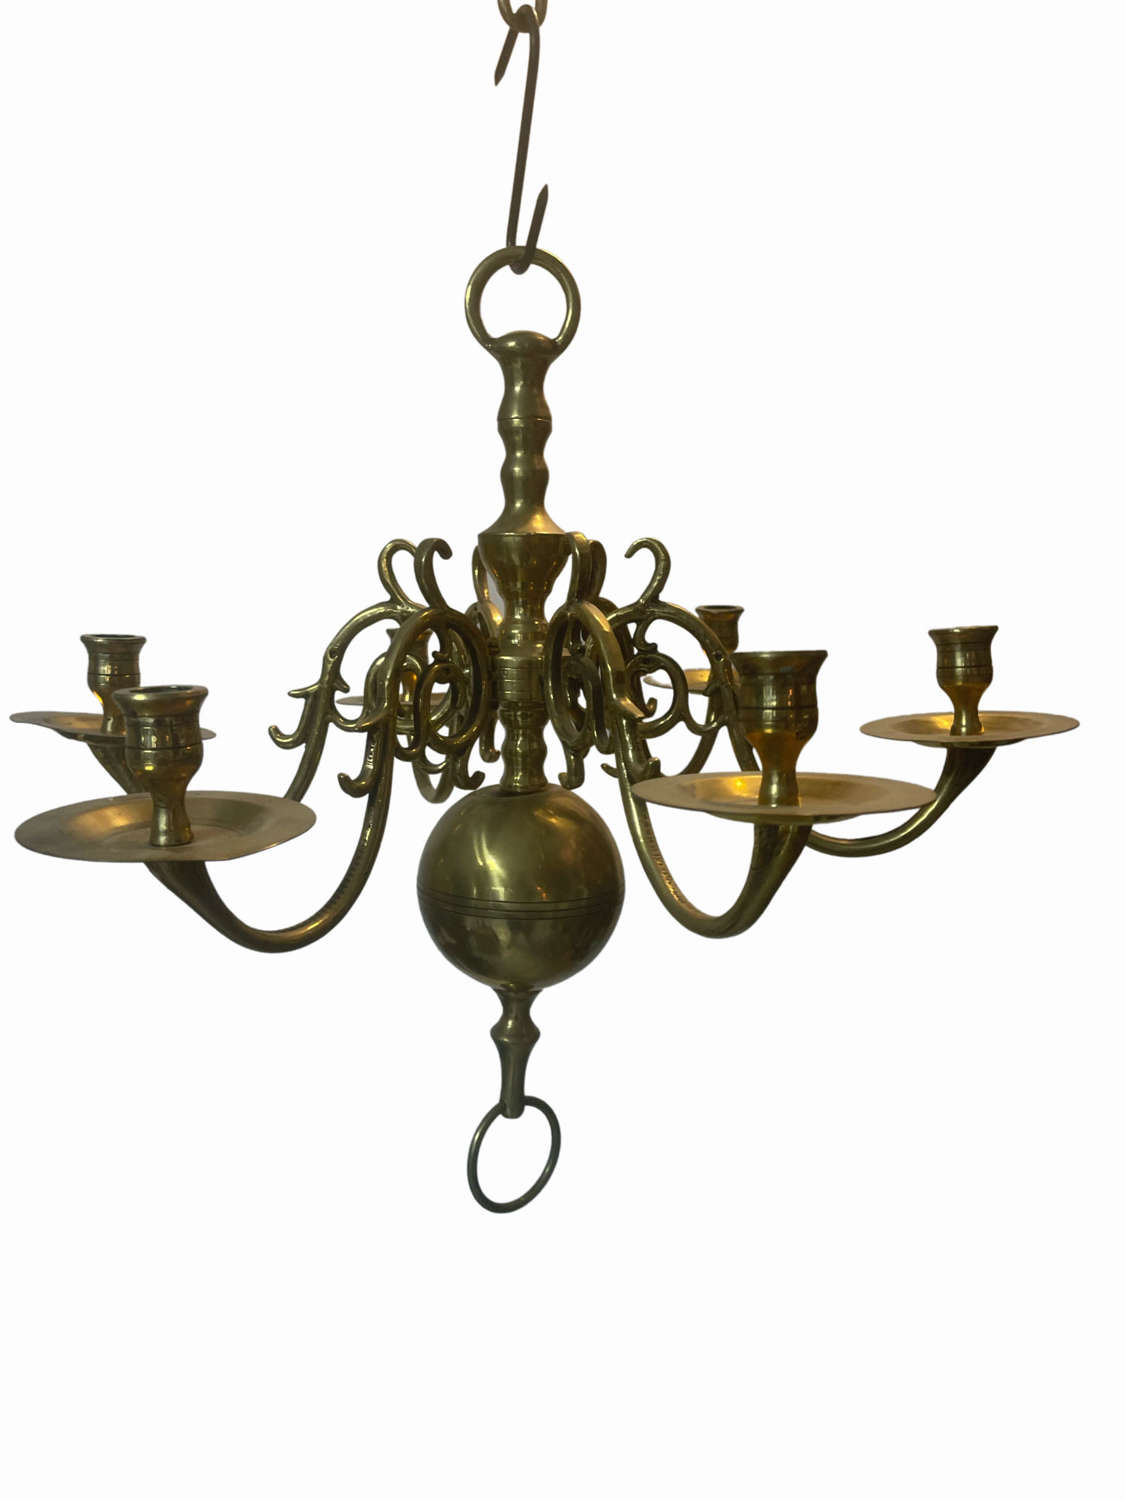 A mid 19th century Dutch style chandelier